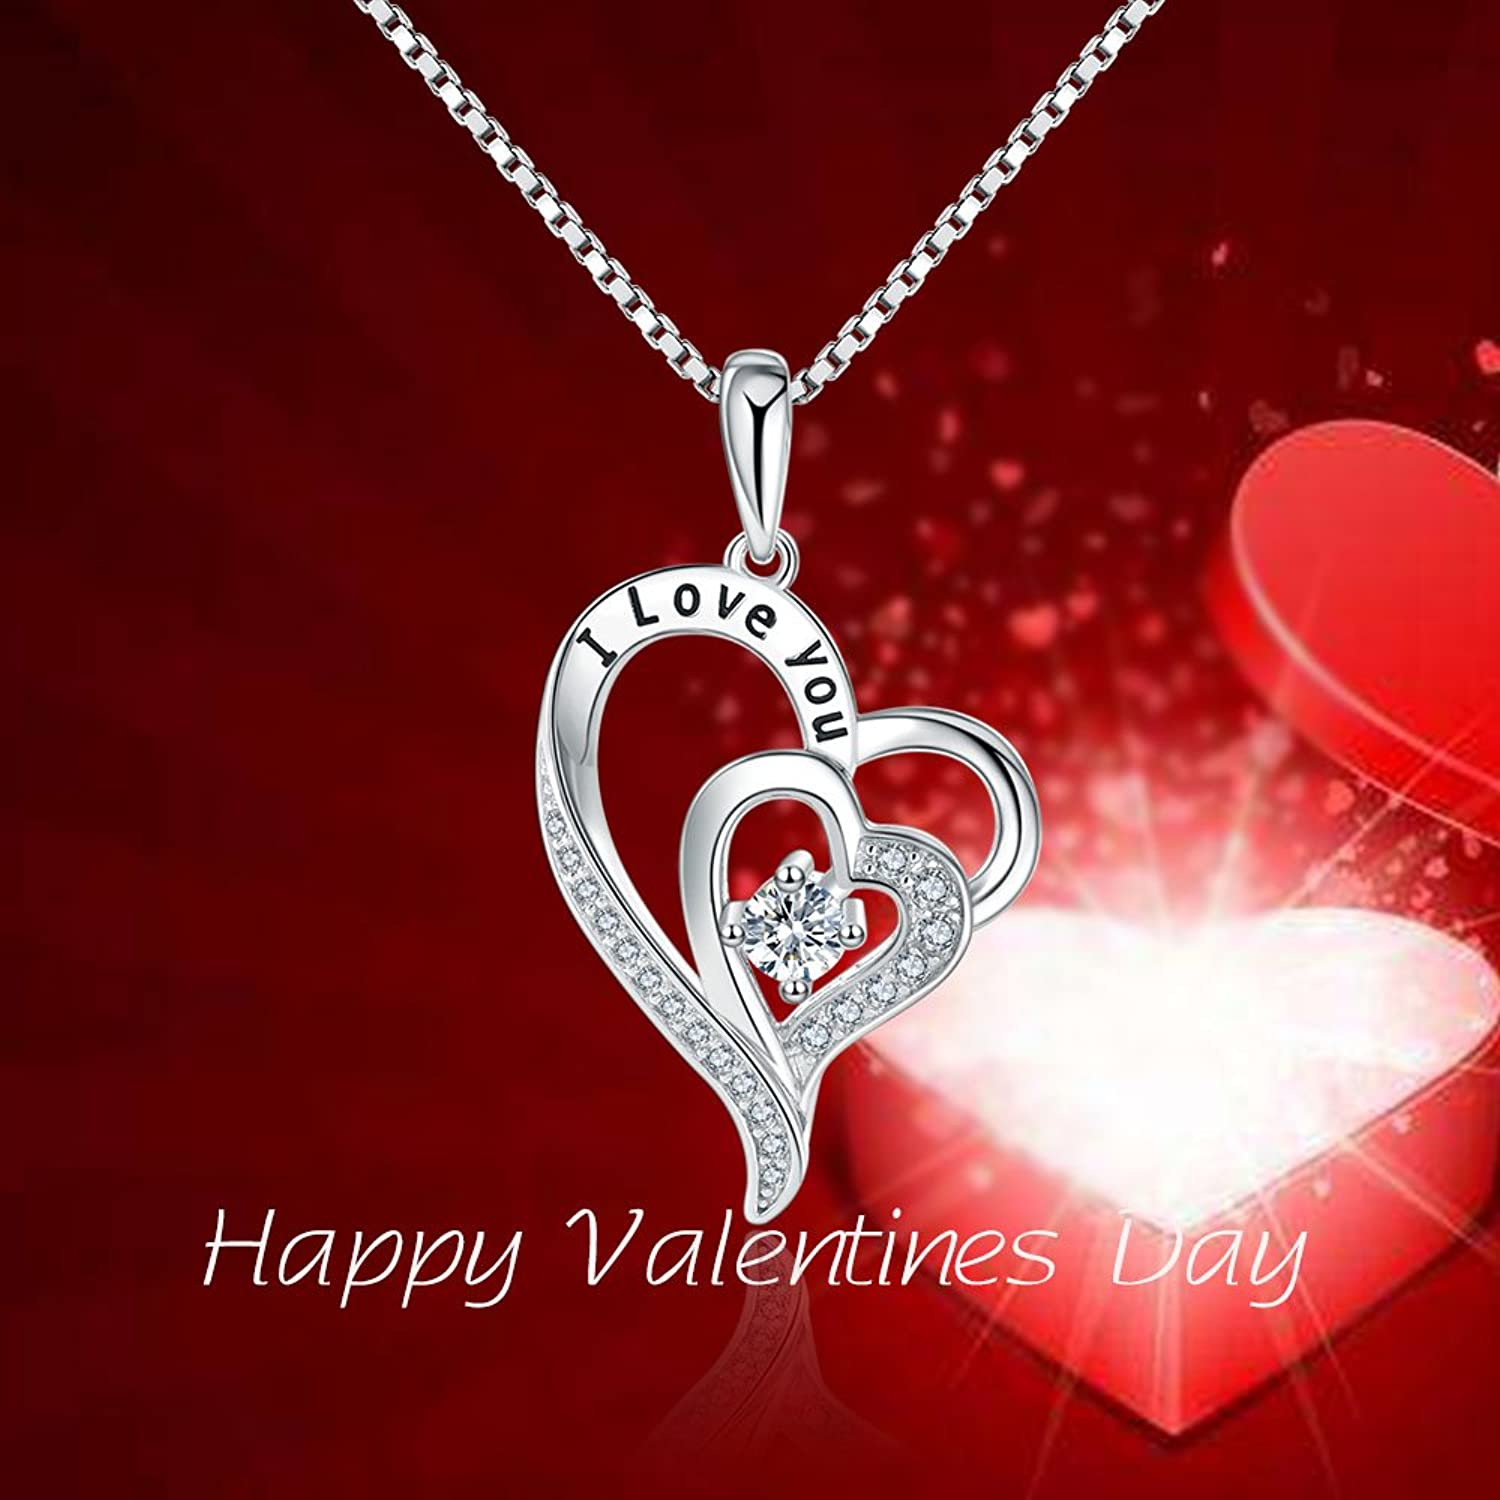 gifts necklaces s day heavy valentines for best necklace valentine com social women header